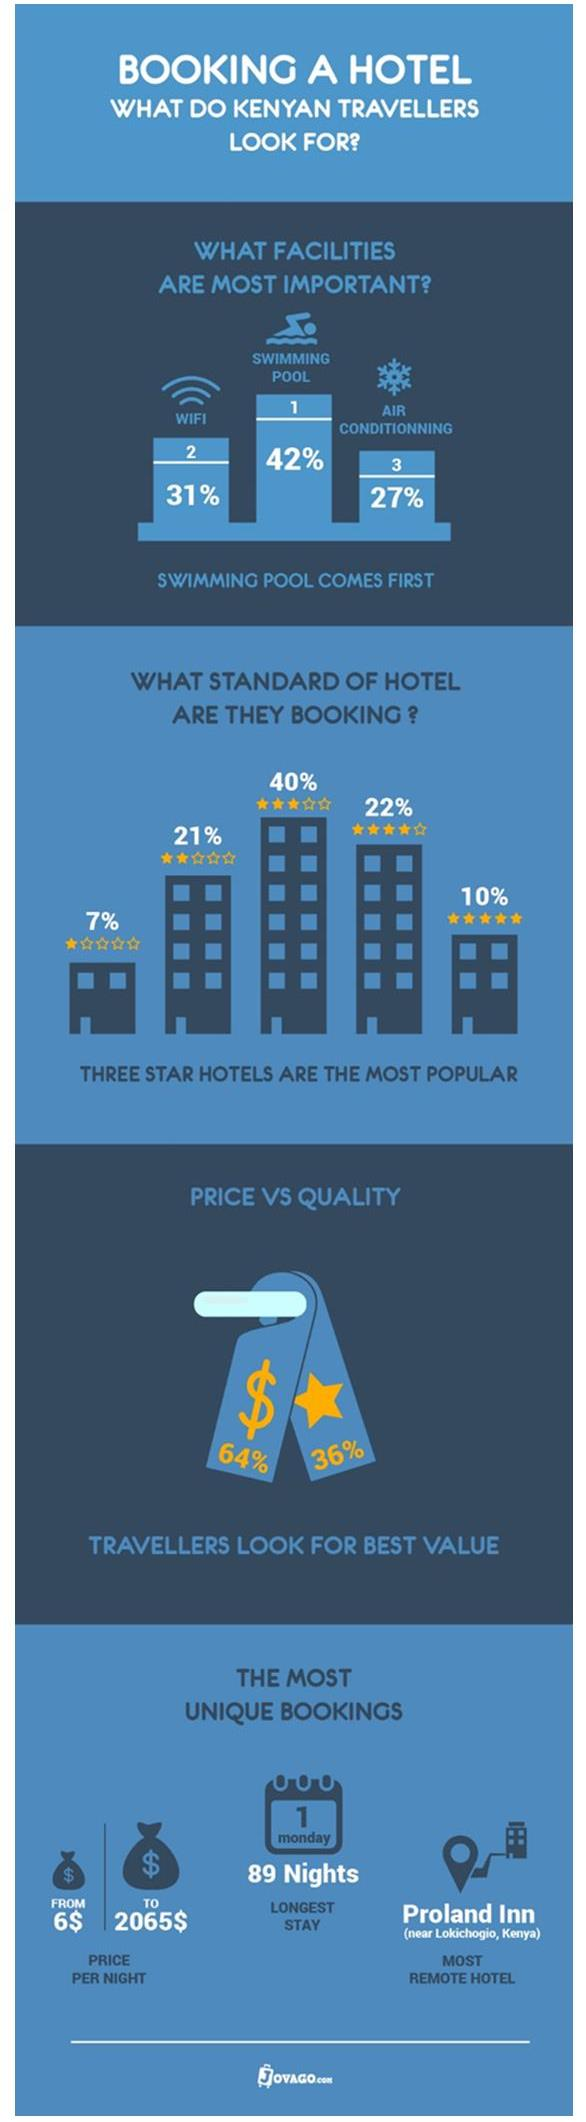 When Booking A Hotel: What Do Kenyan Travellers Really Look For?